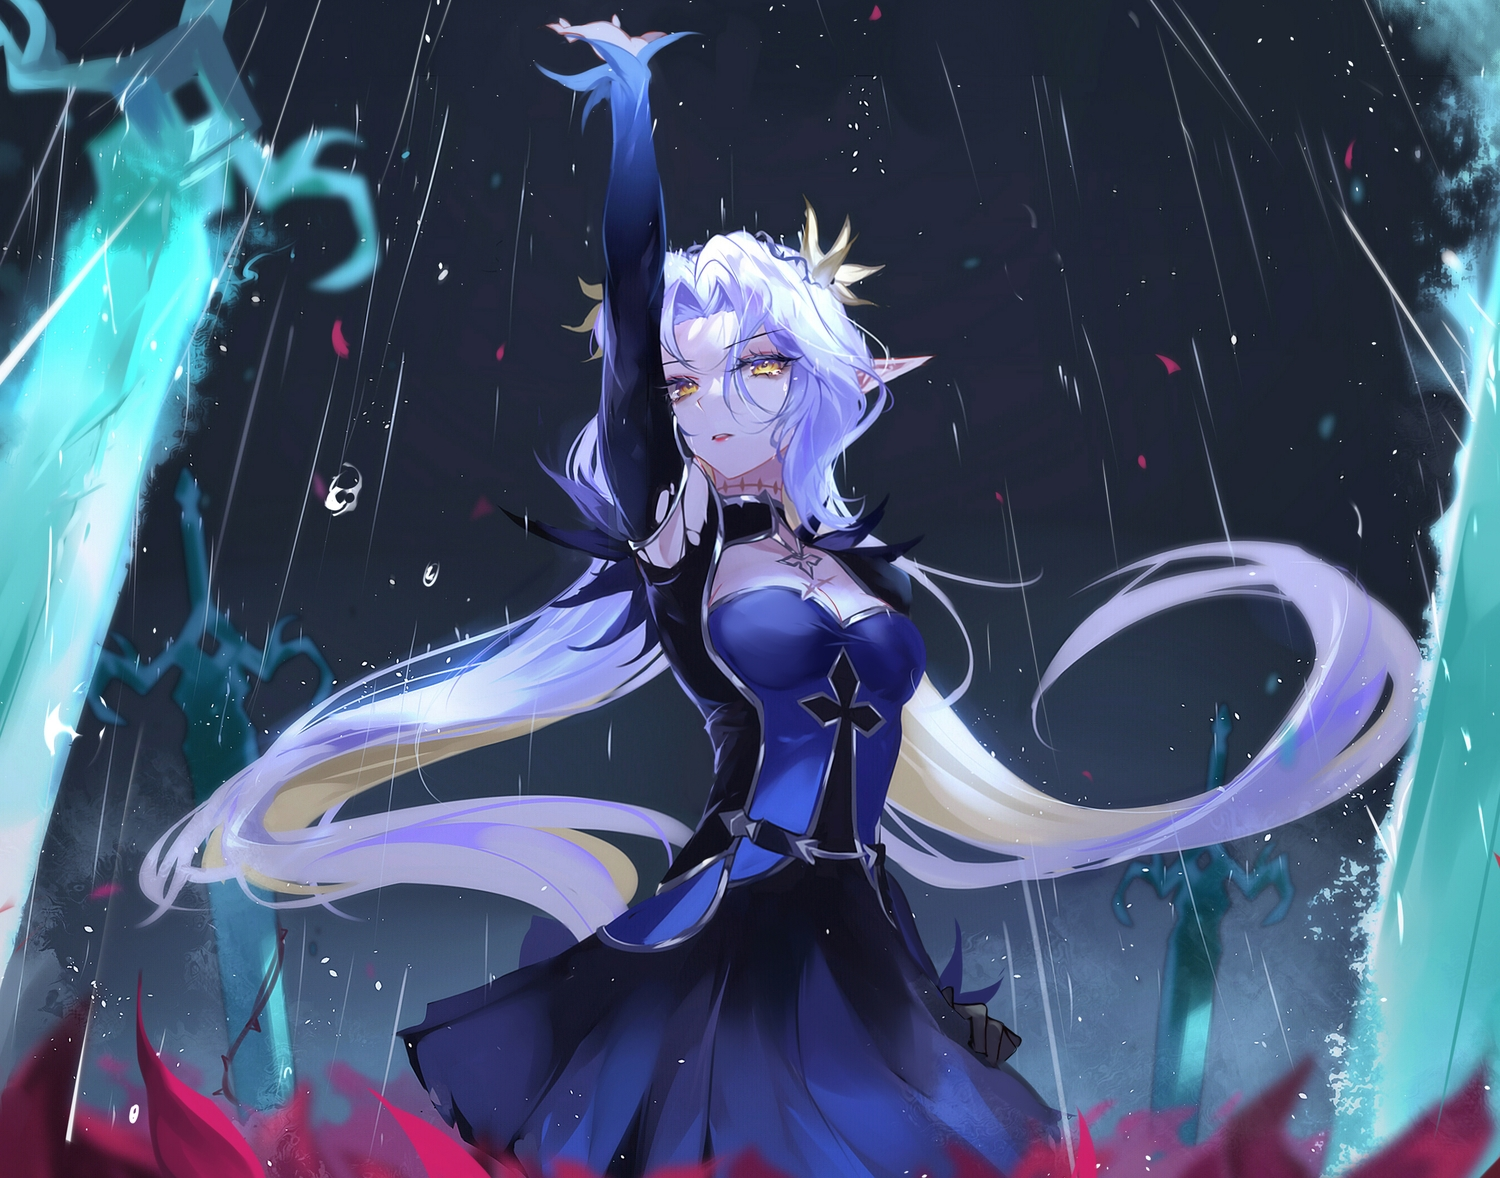 breasts briar_witch_iseria_(epic7) cleavage epic7 long_hair pointed_ears rain sword vardan water weapon